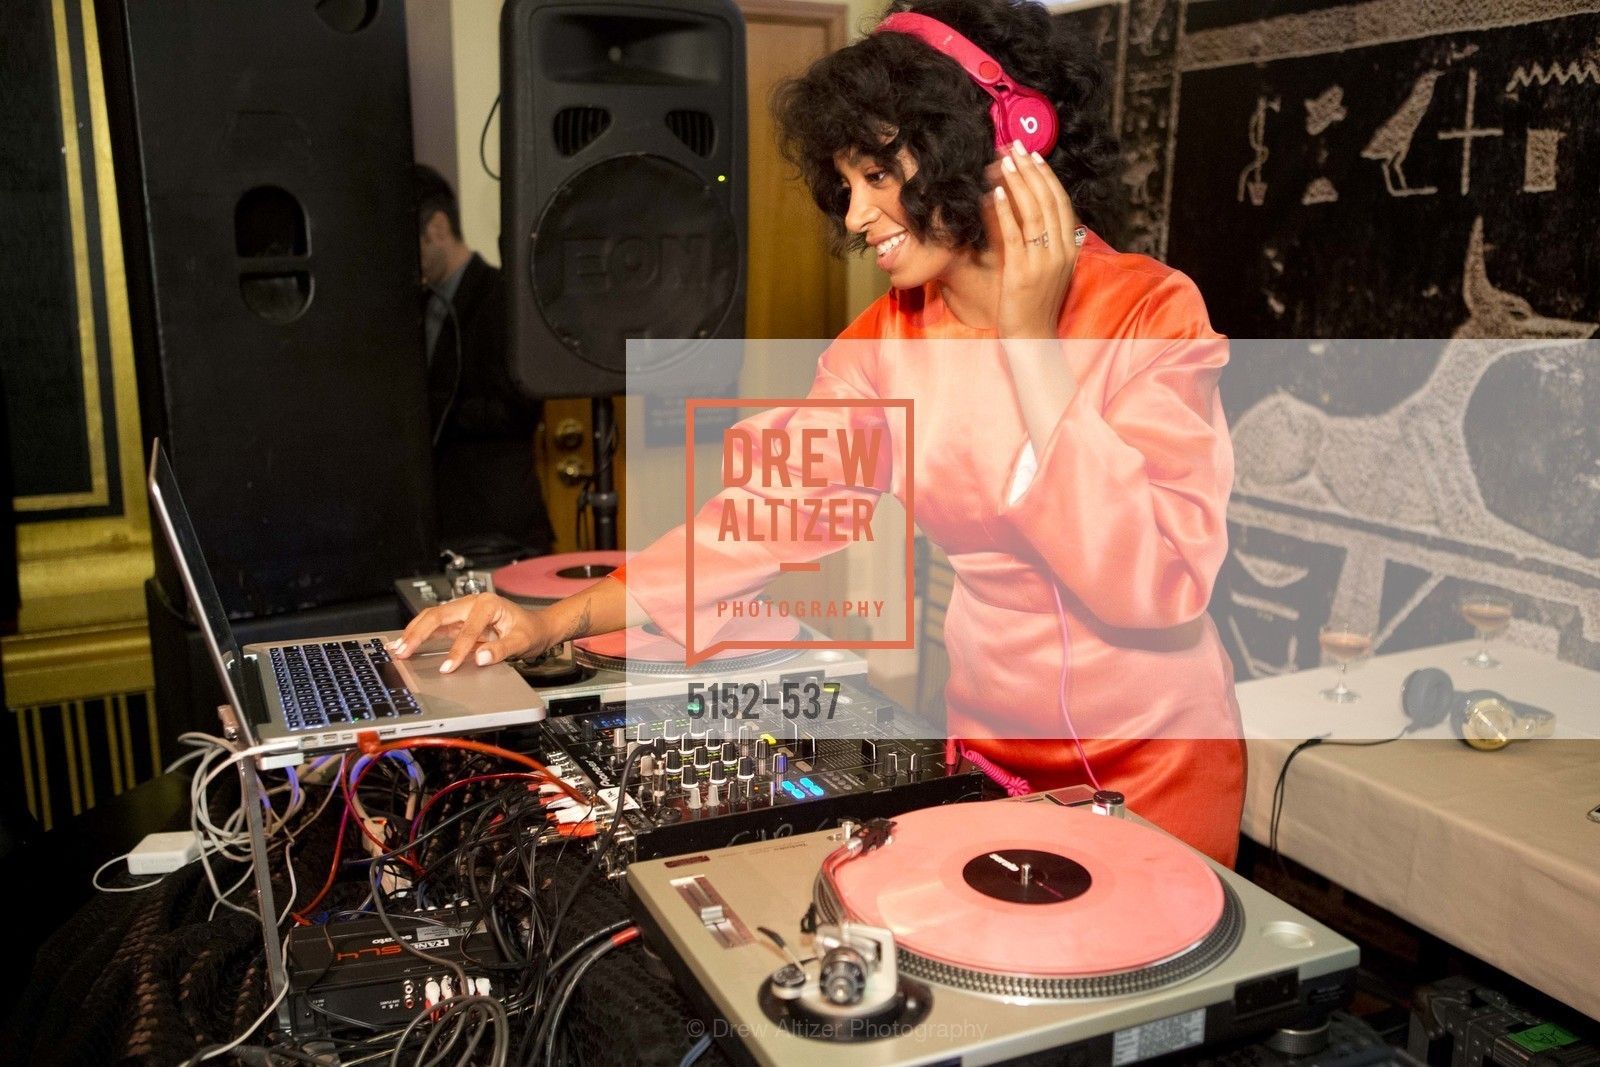 Dj, TOP OF THE MARK'S 75TH Anniversary Party, US, November 7th, 2014,Drew Altizer, Drew Altizer Photography, full-service event agency, private events, San Francisco photographer, photographer California